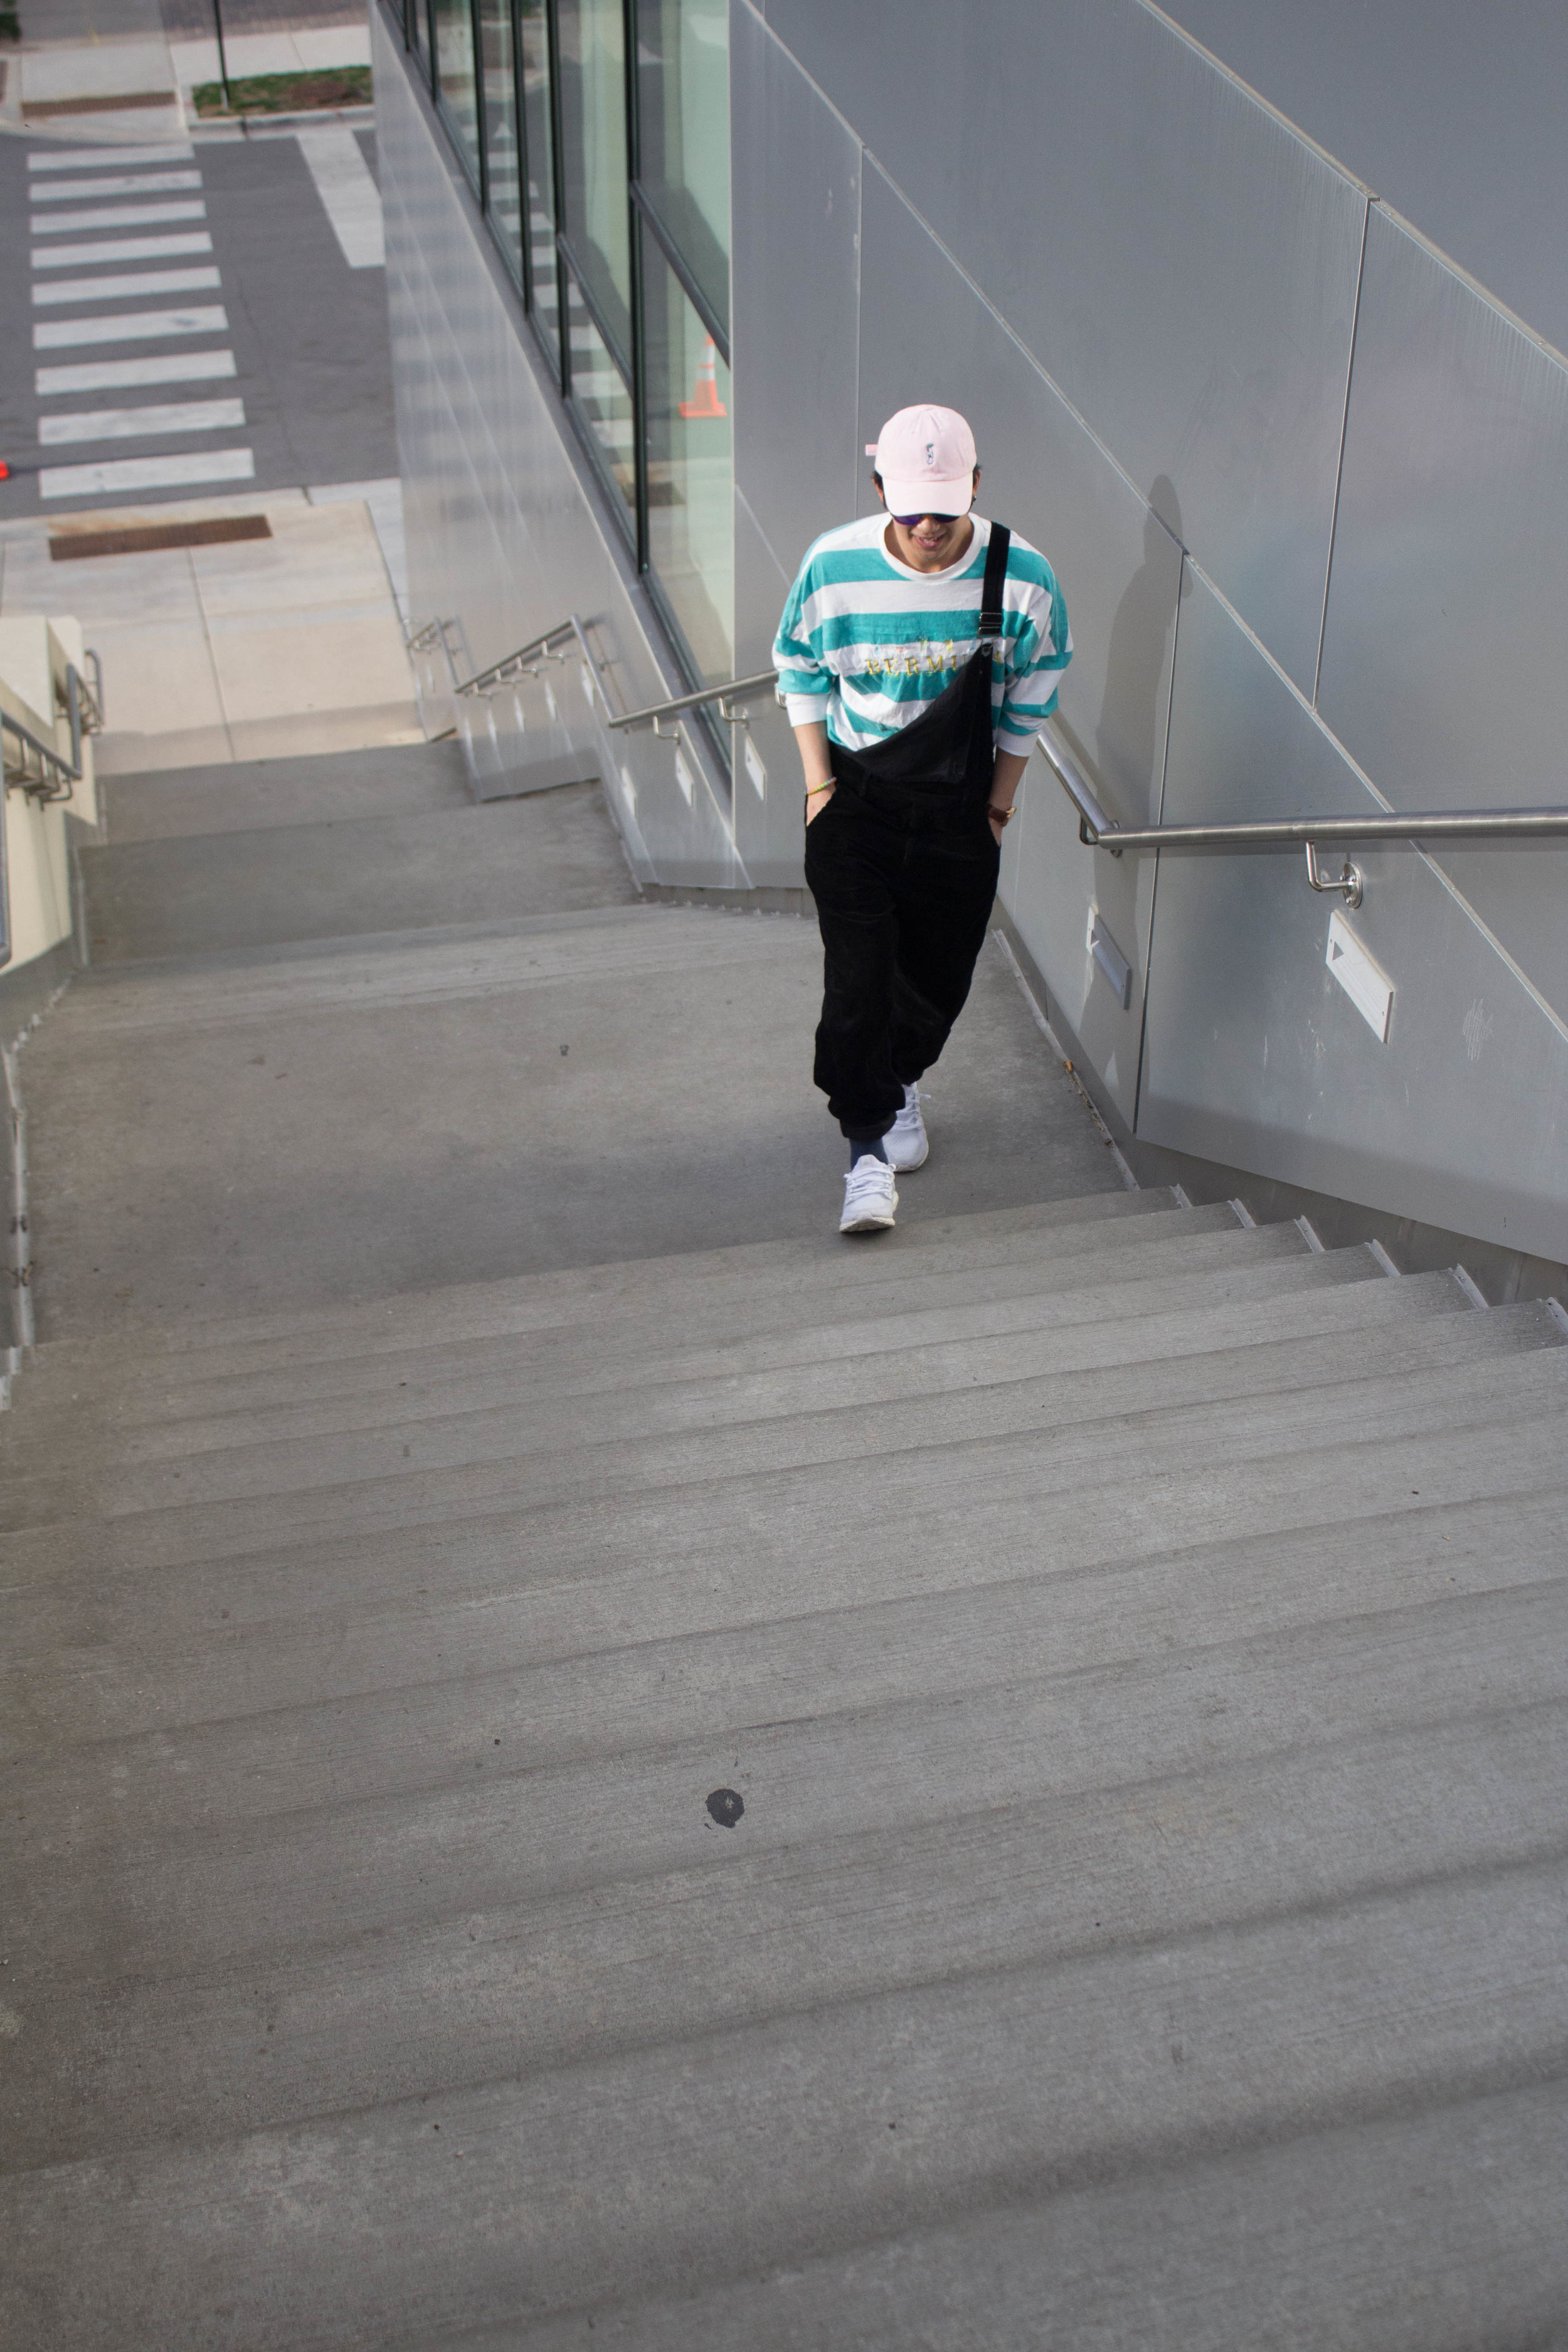 On Andrew:  Urban Outfitters overalls & shirt,JWEJ Clothing hat, Adidas sneakers